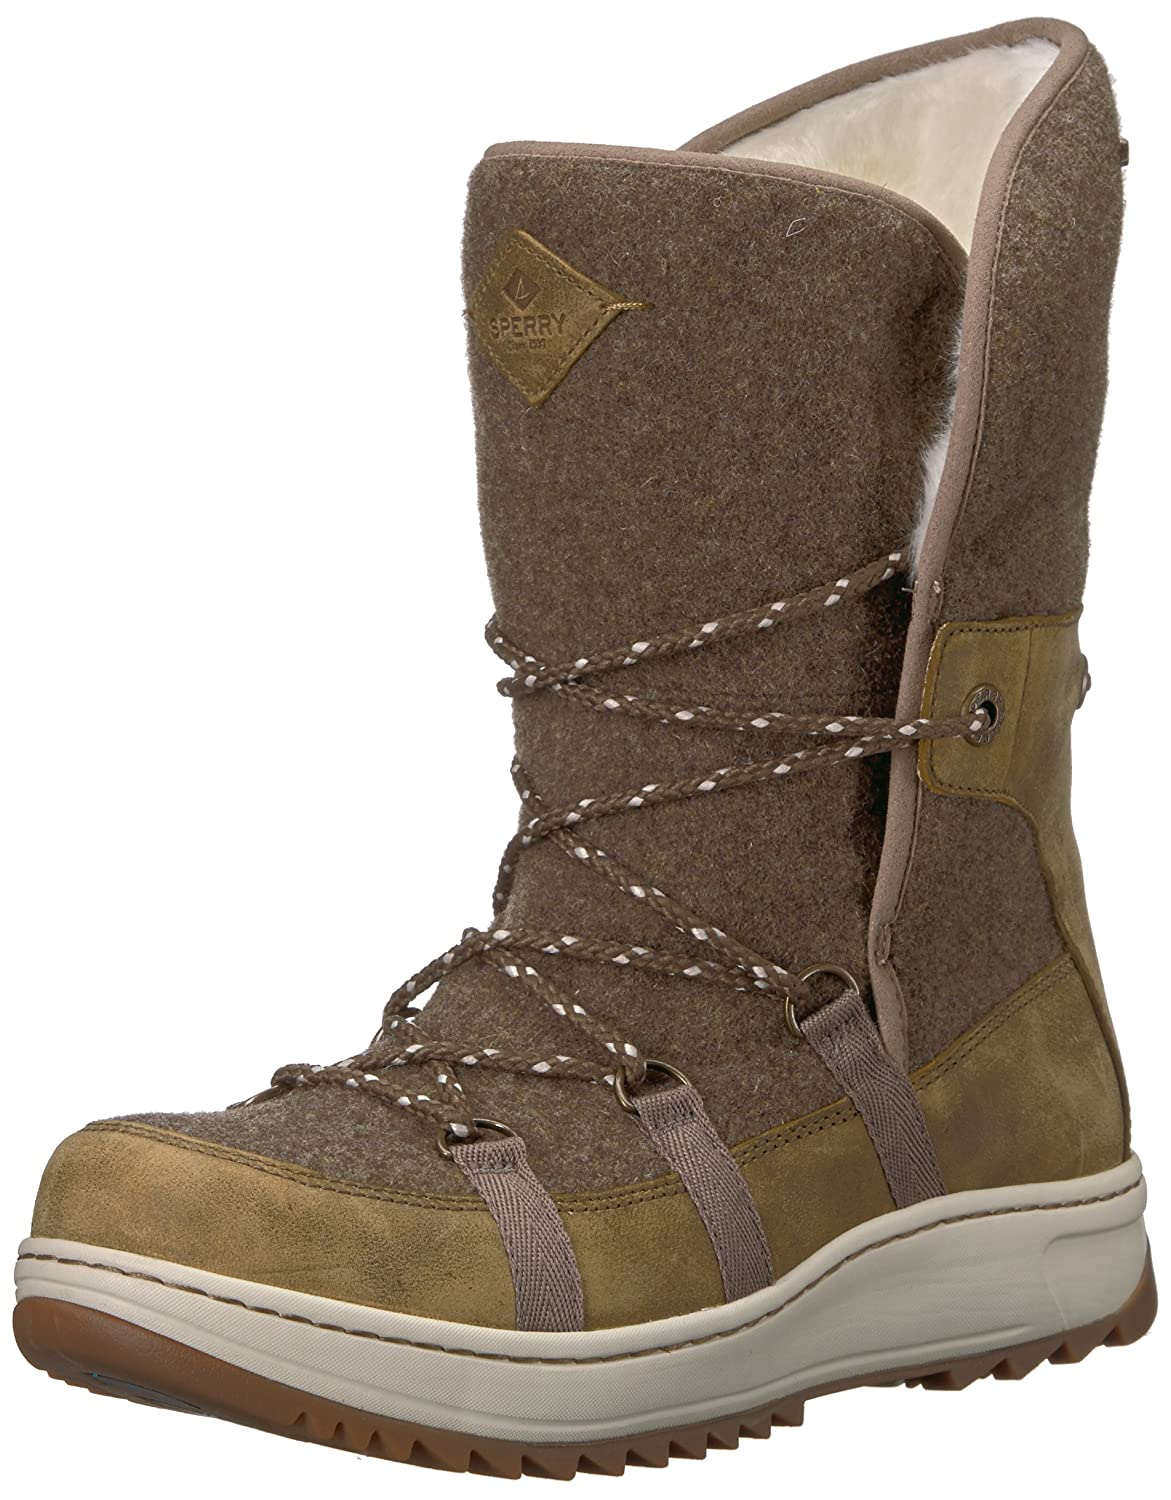 Olive Sperry Womens Powder Ice Cap Mid Calf Boots